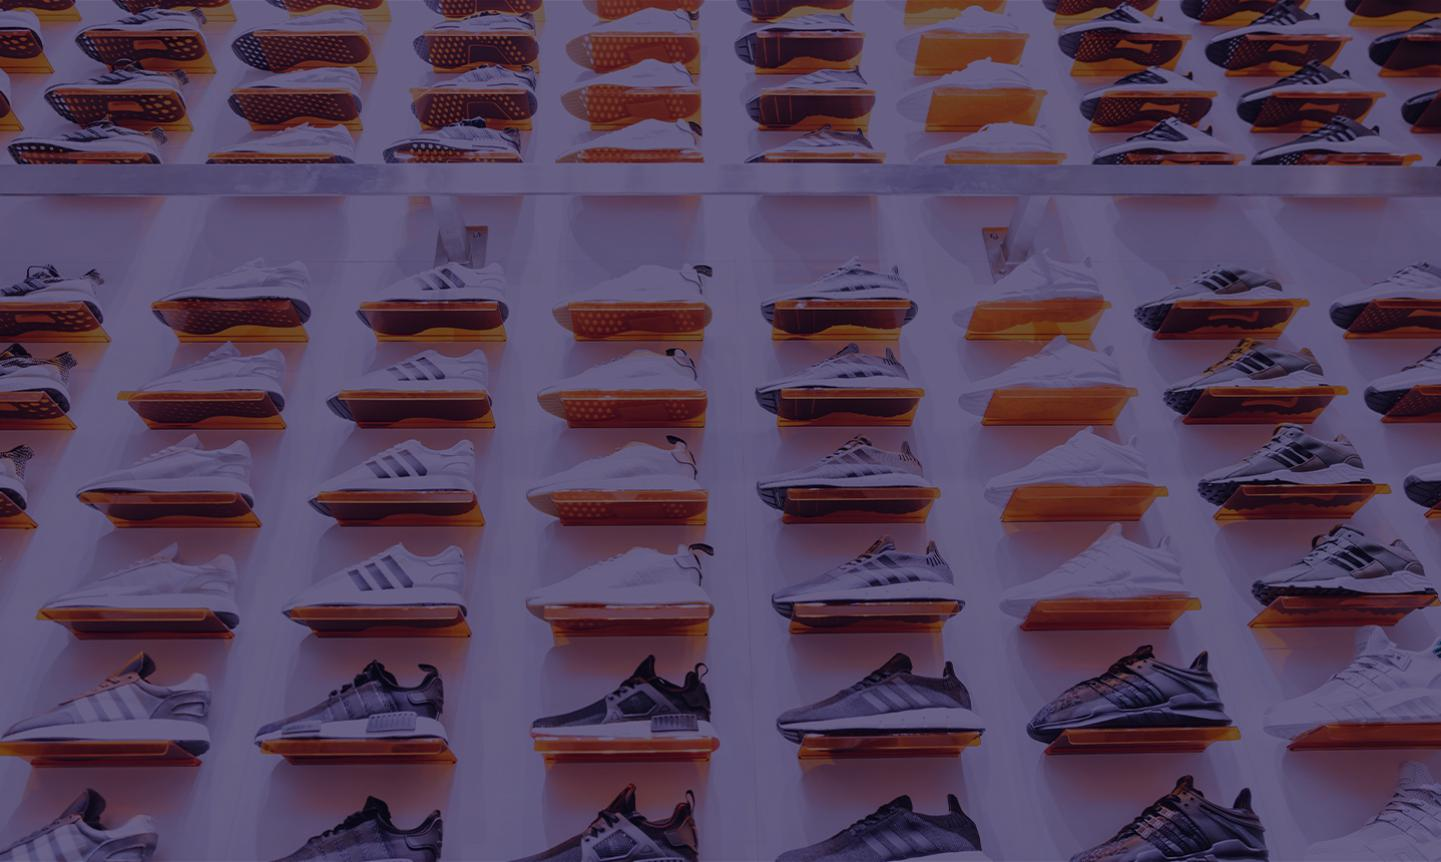 A wall of shoes.